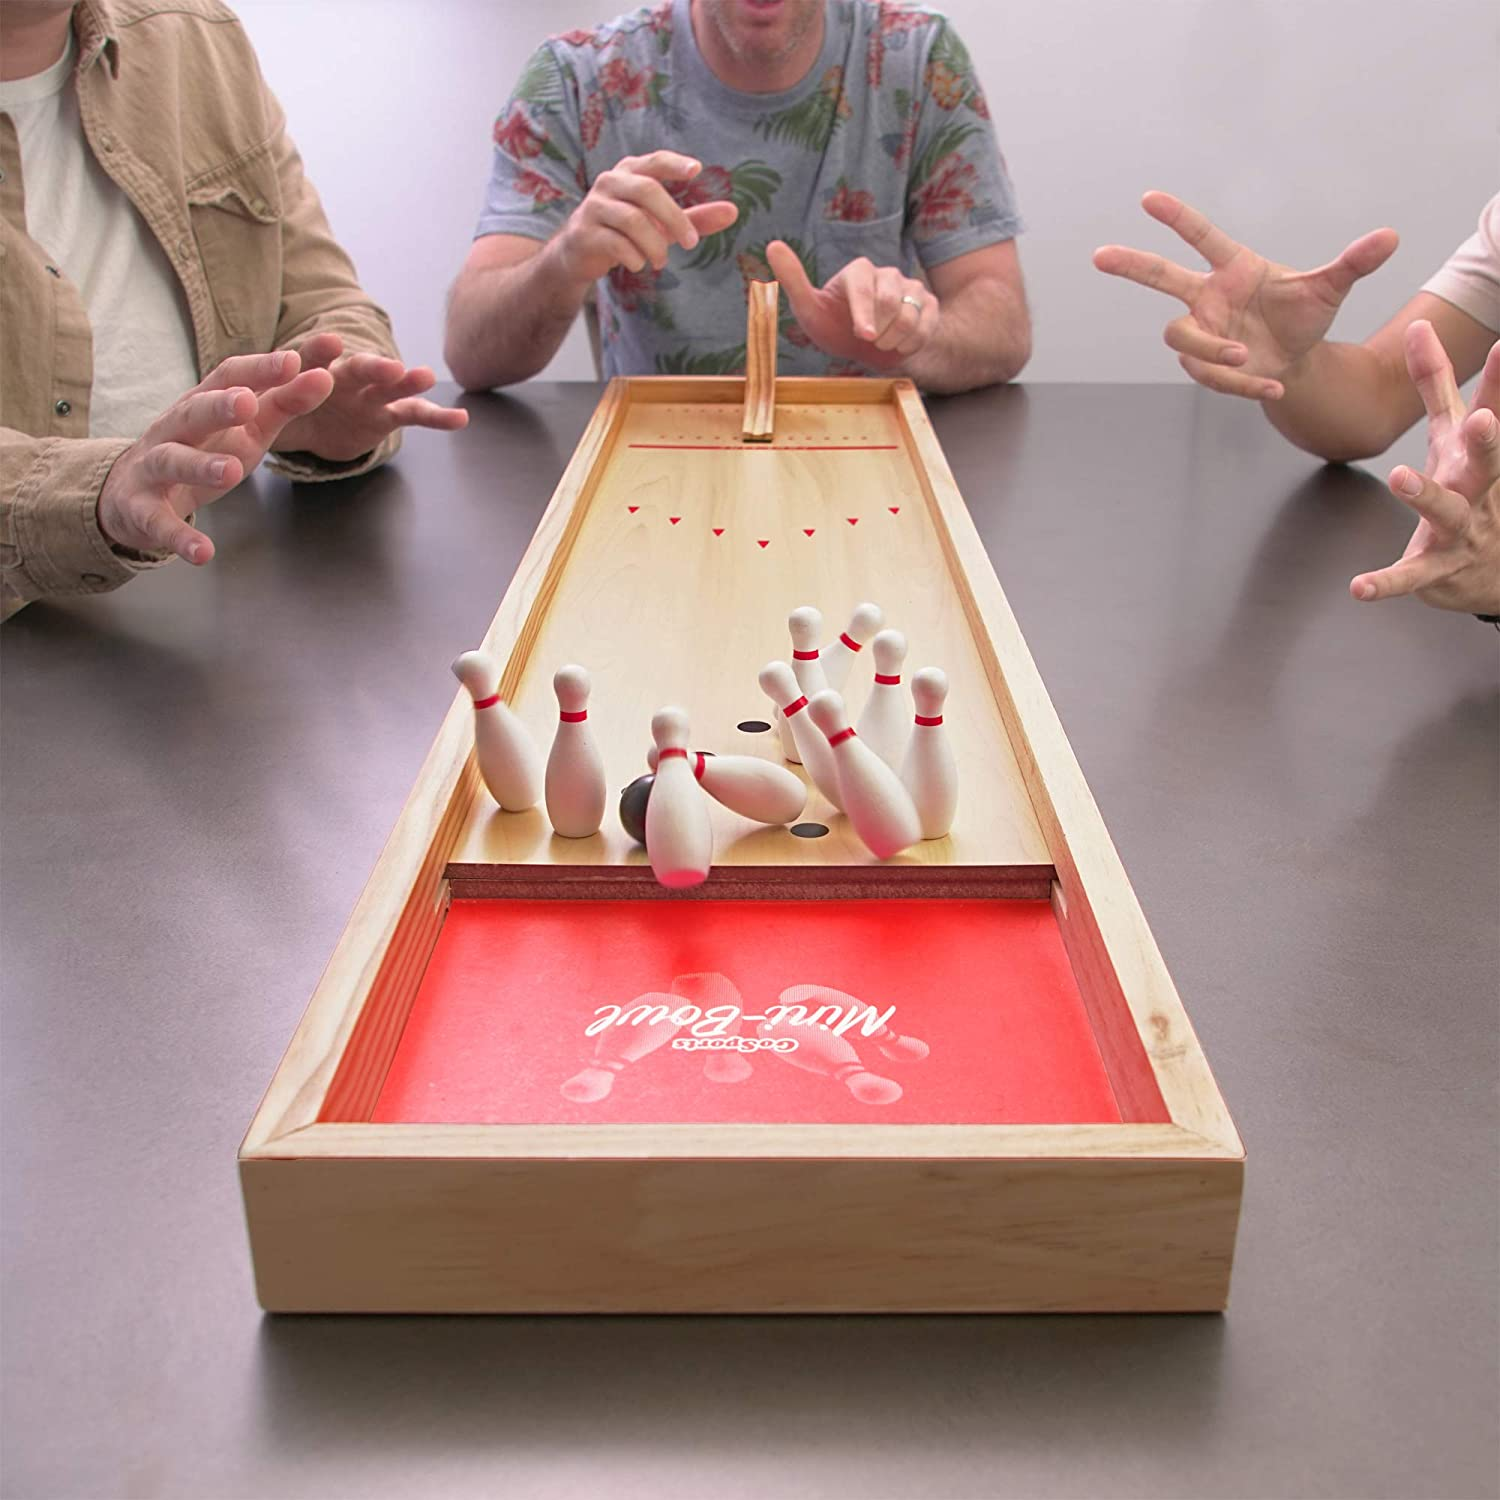 Perfect for Kids /& Adults Premium Wooden Construction with Dry Erase Scorecard GoSports Tabletop Bowling Game